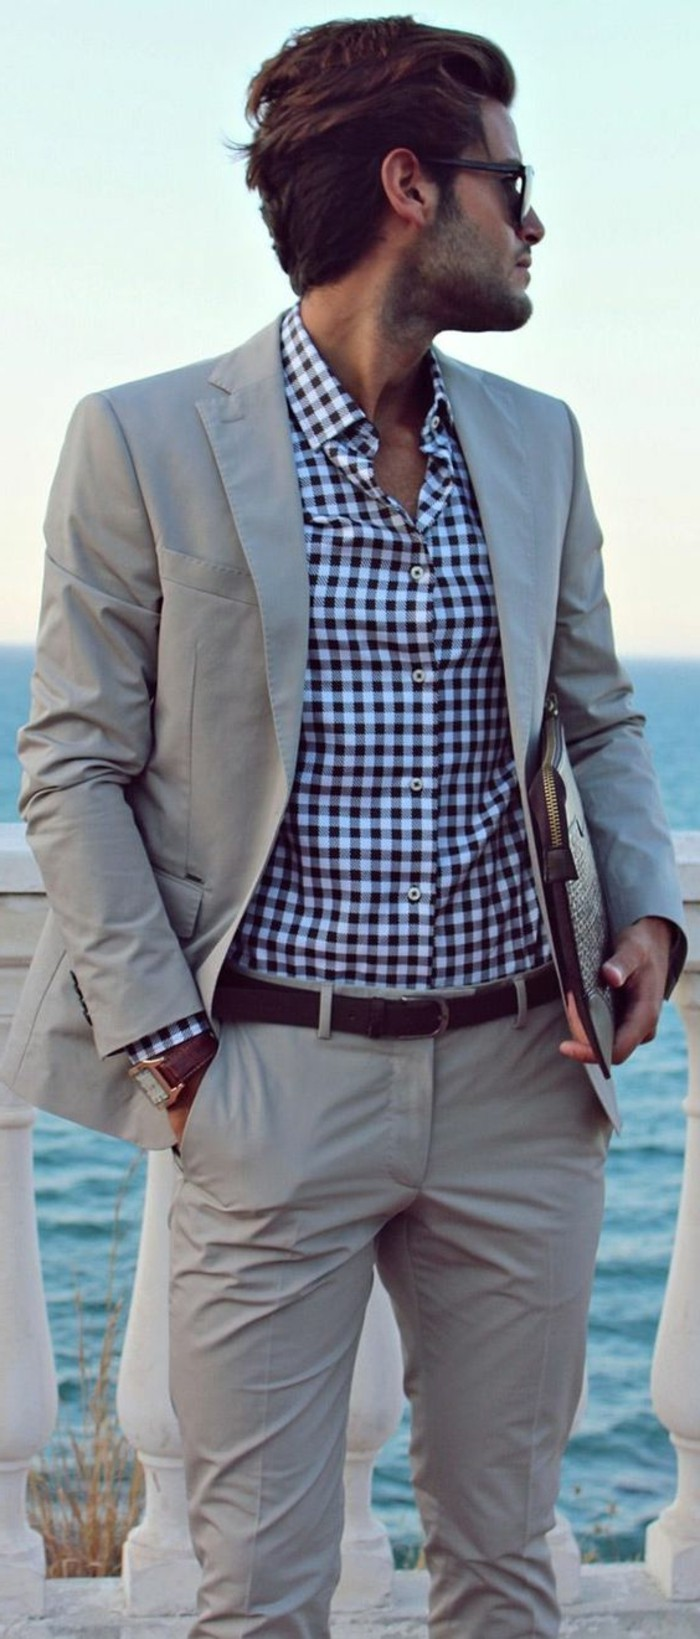 beige two piece suit, worn with blue and white checkered shirt, by brunette man, mens casual summer wedding attire, with glasses and a hand in his pocket